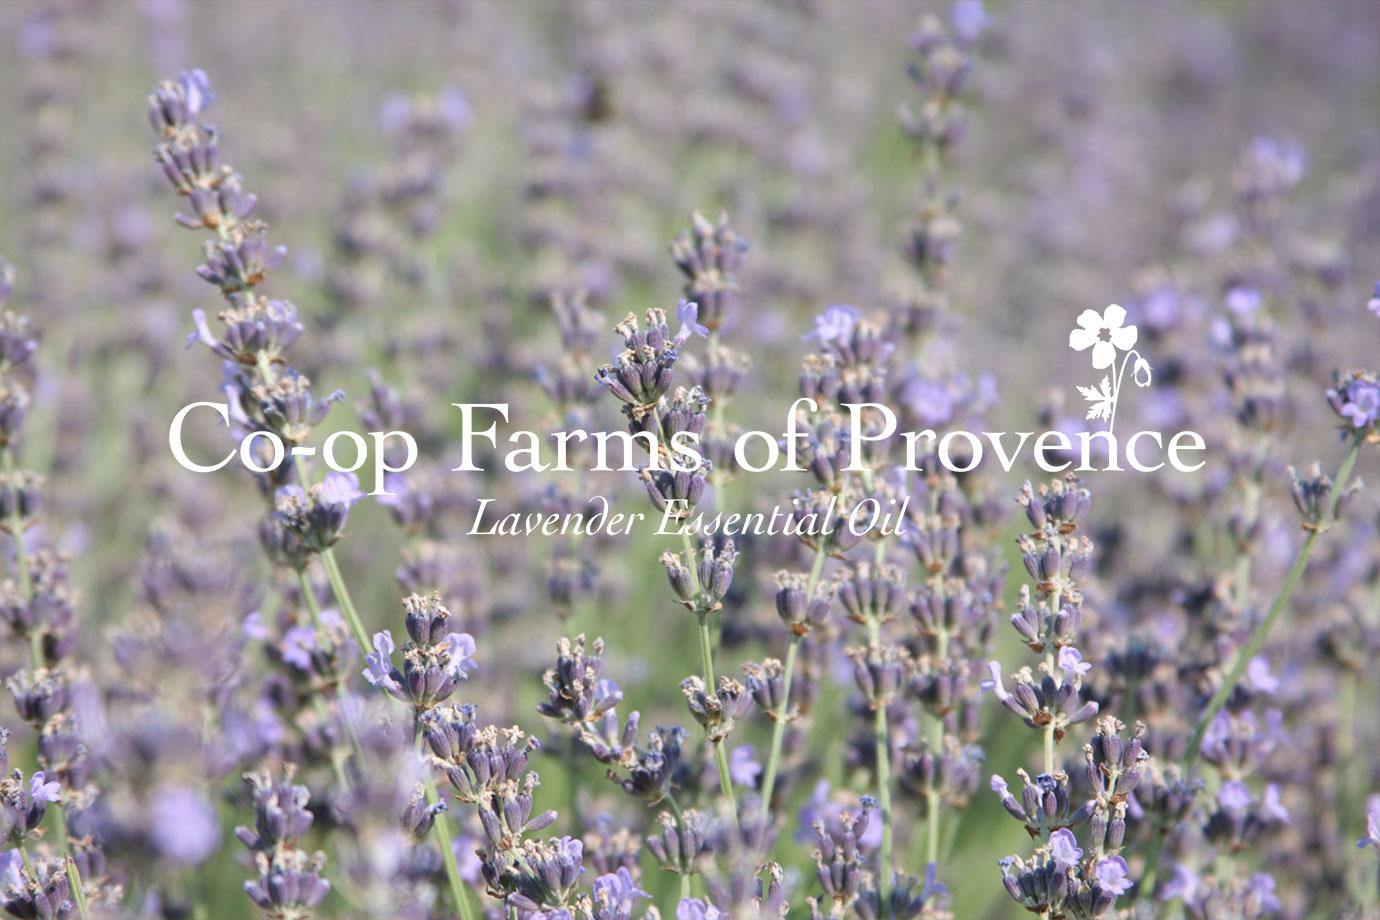 Co-op Farms of Provence ~ Lavender Essential Oil